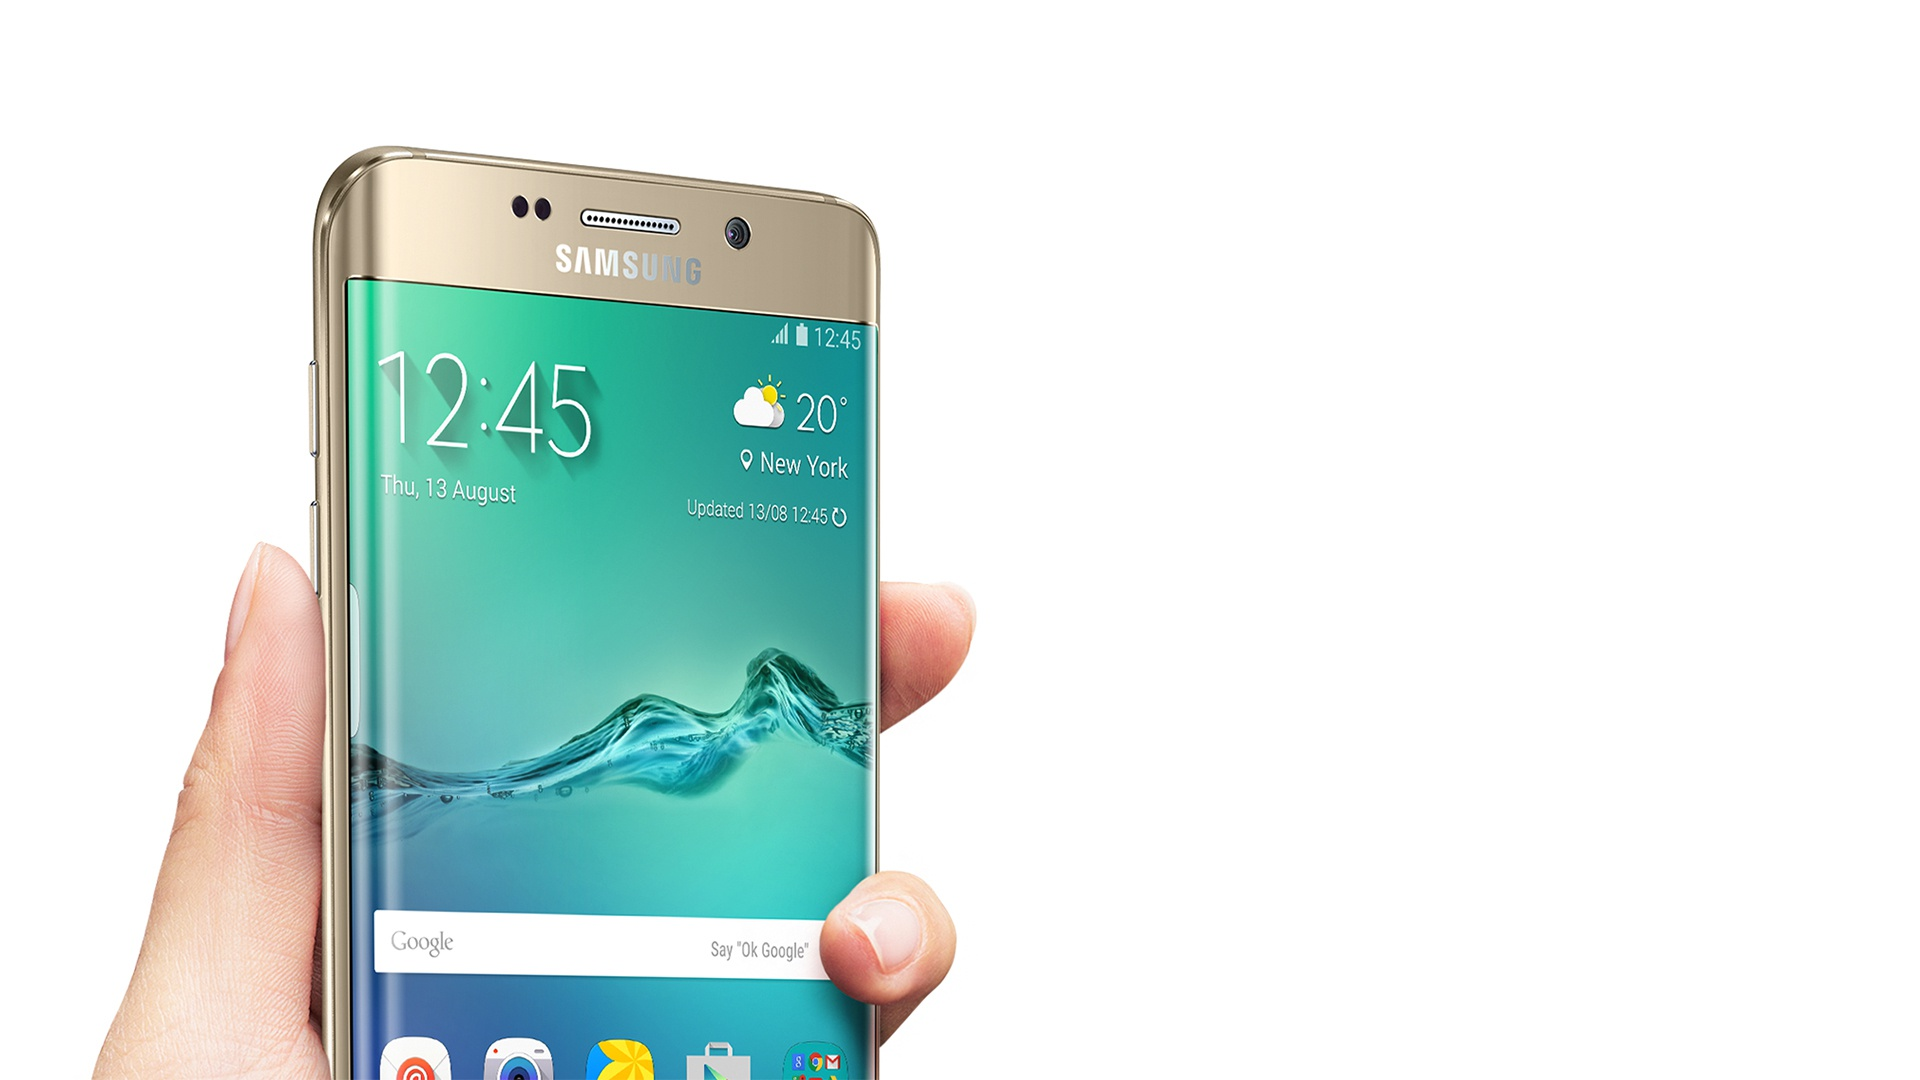 galaxy-s6-edge+_design_edge-ux-accessibility_left